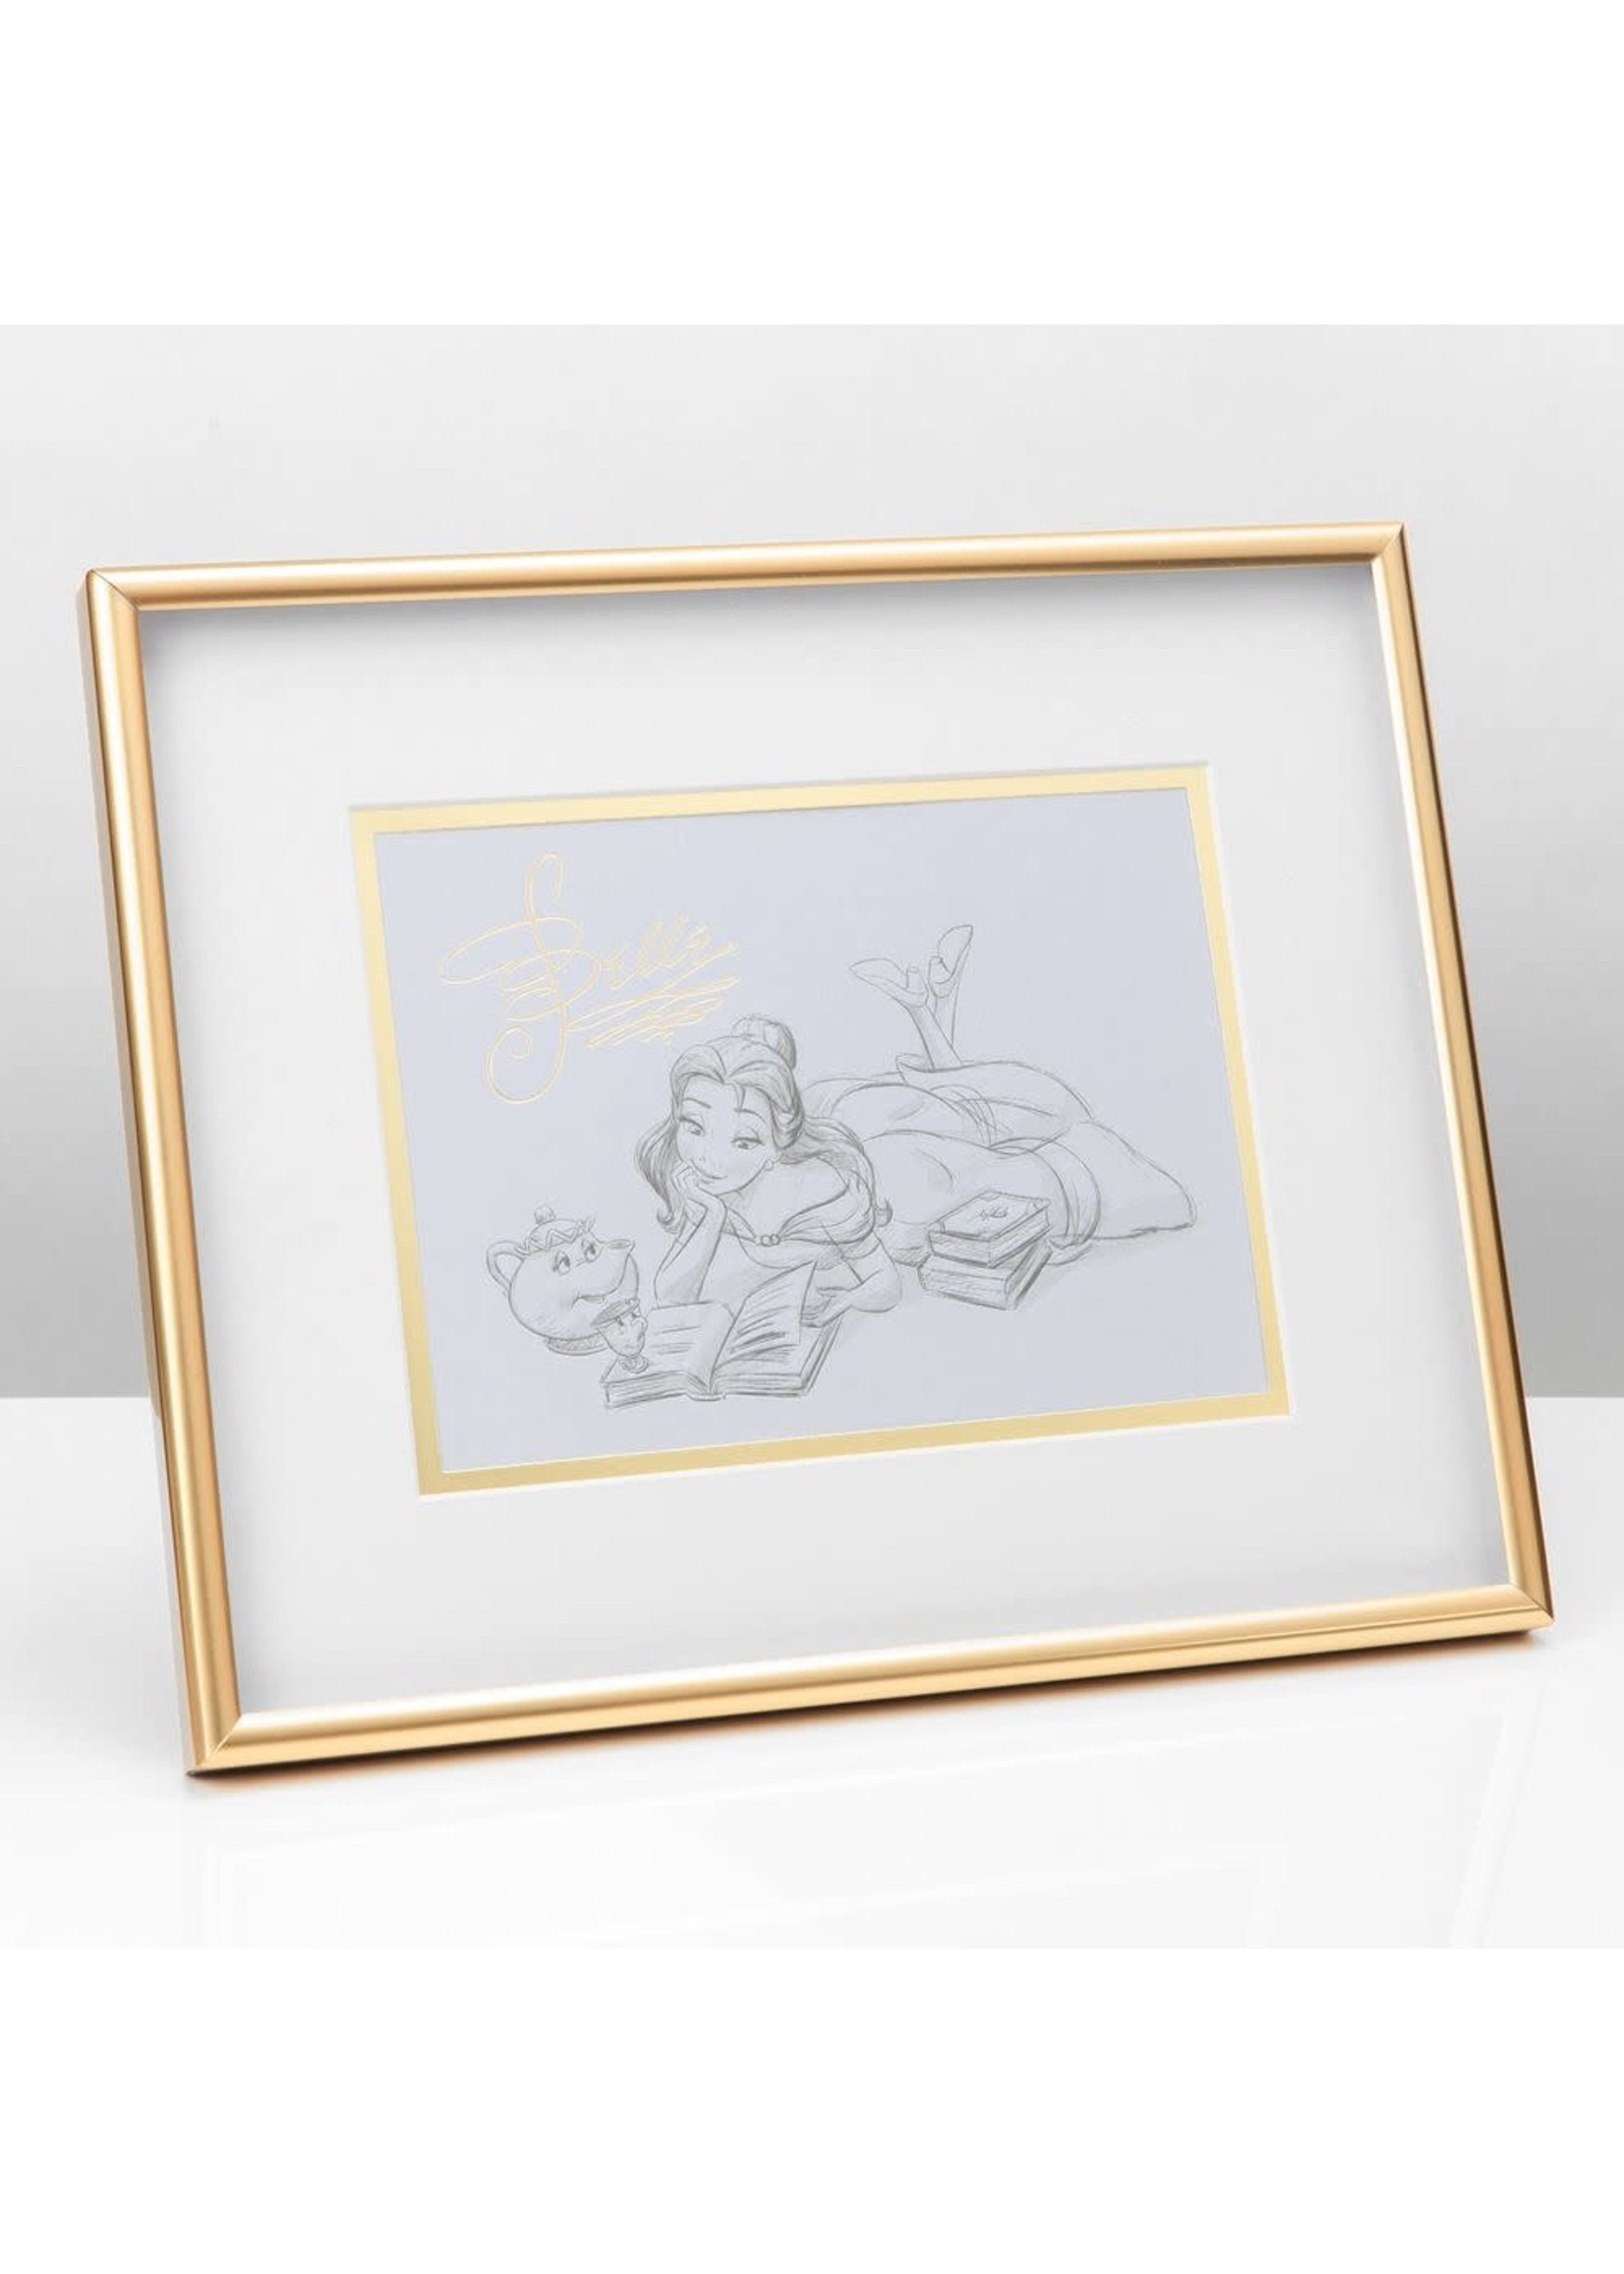 DISNEY CLASSIC COLLECTABLES FRAMED PRINT - BELLE